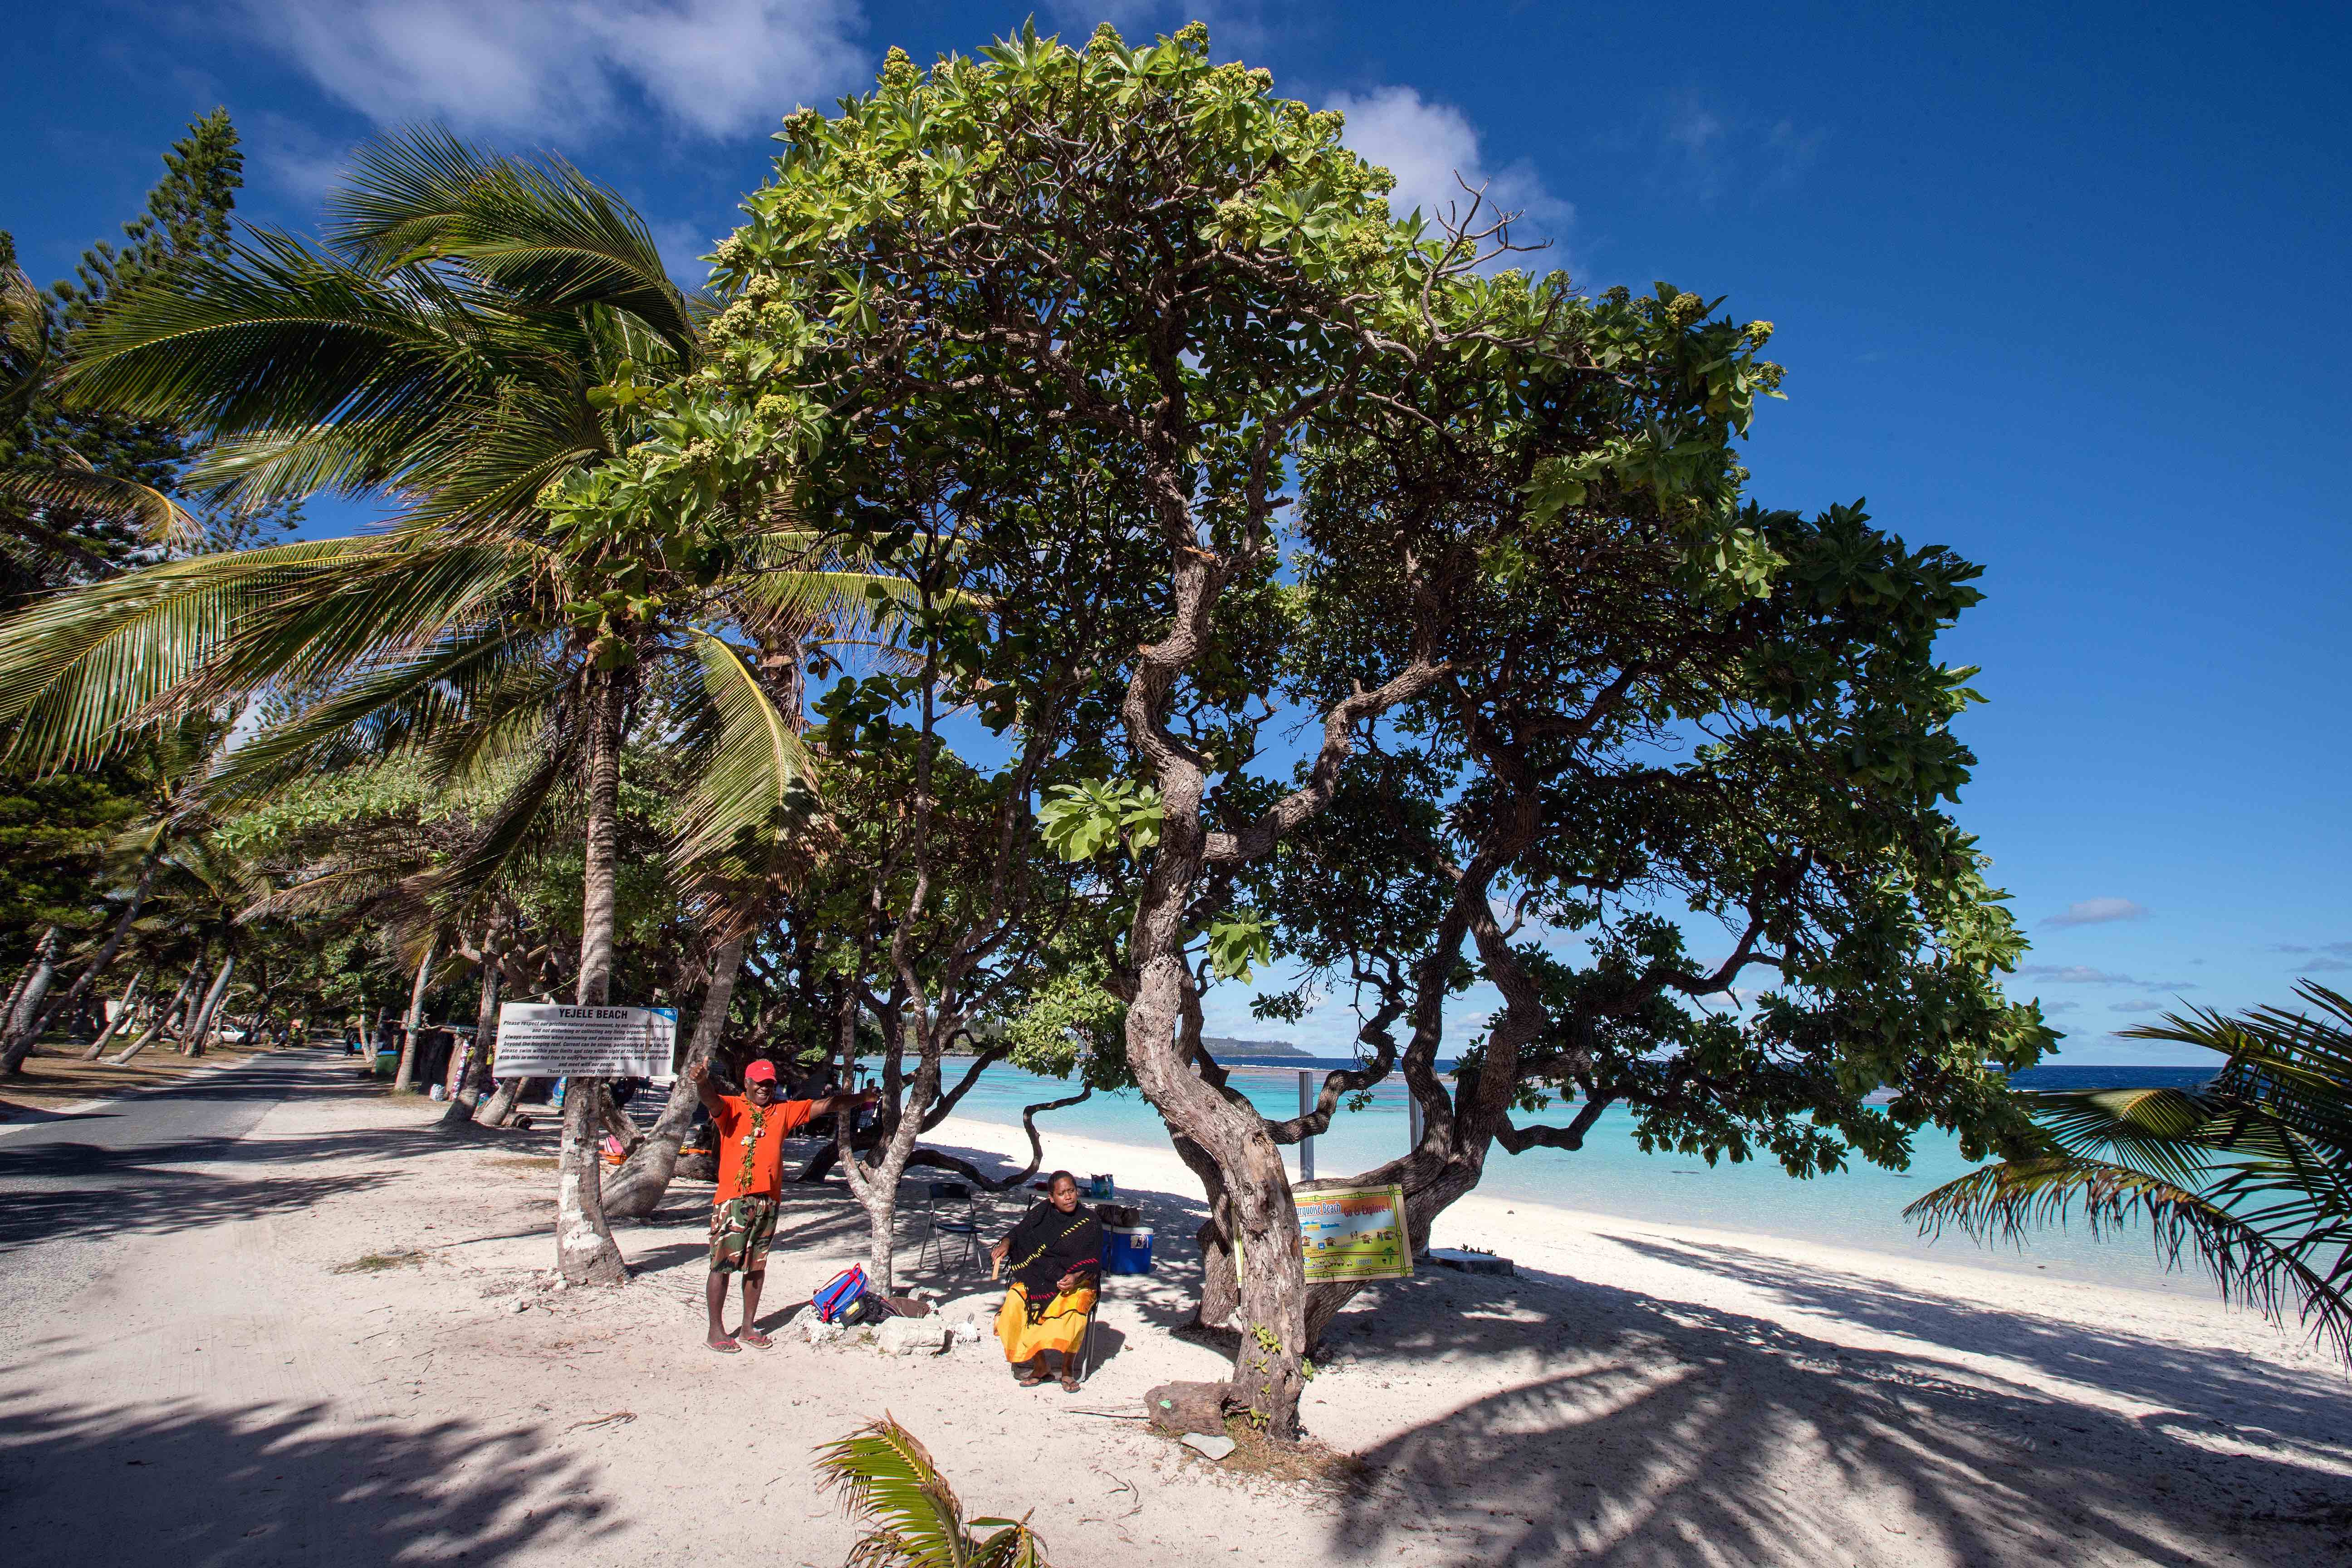 swim-snorkel-yejele-beach-new-caledonia-travelling-with-kids-2